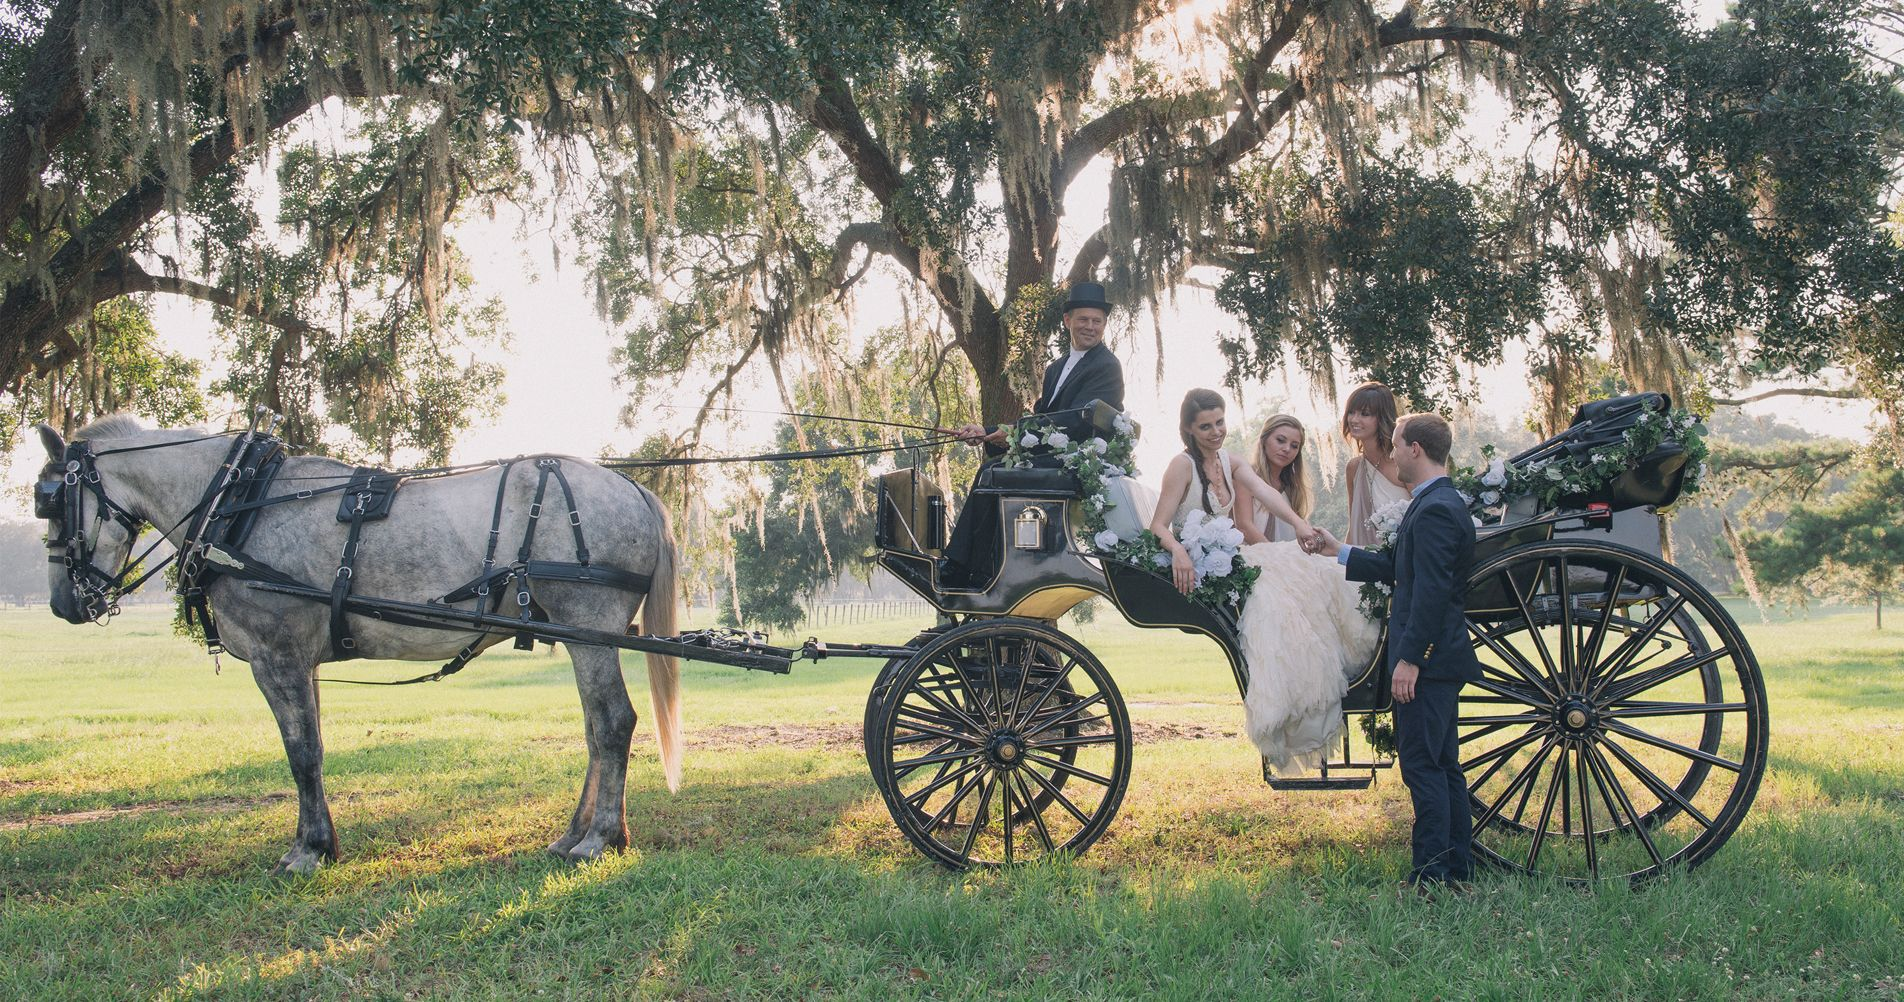 Old South Carriage Company Charleston Carriage Tours Walking